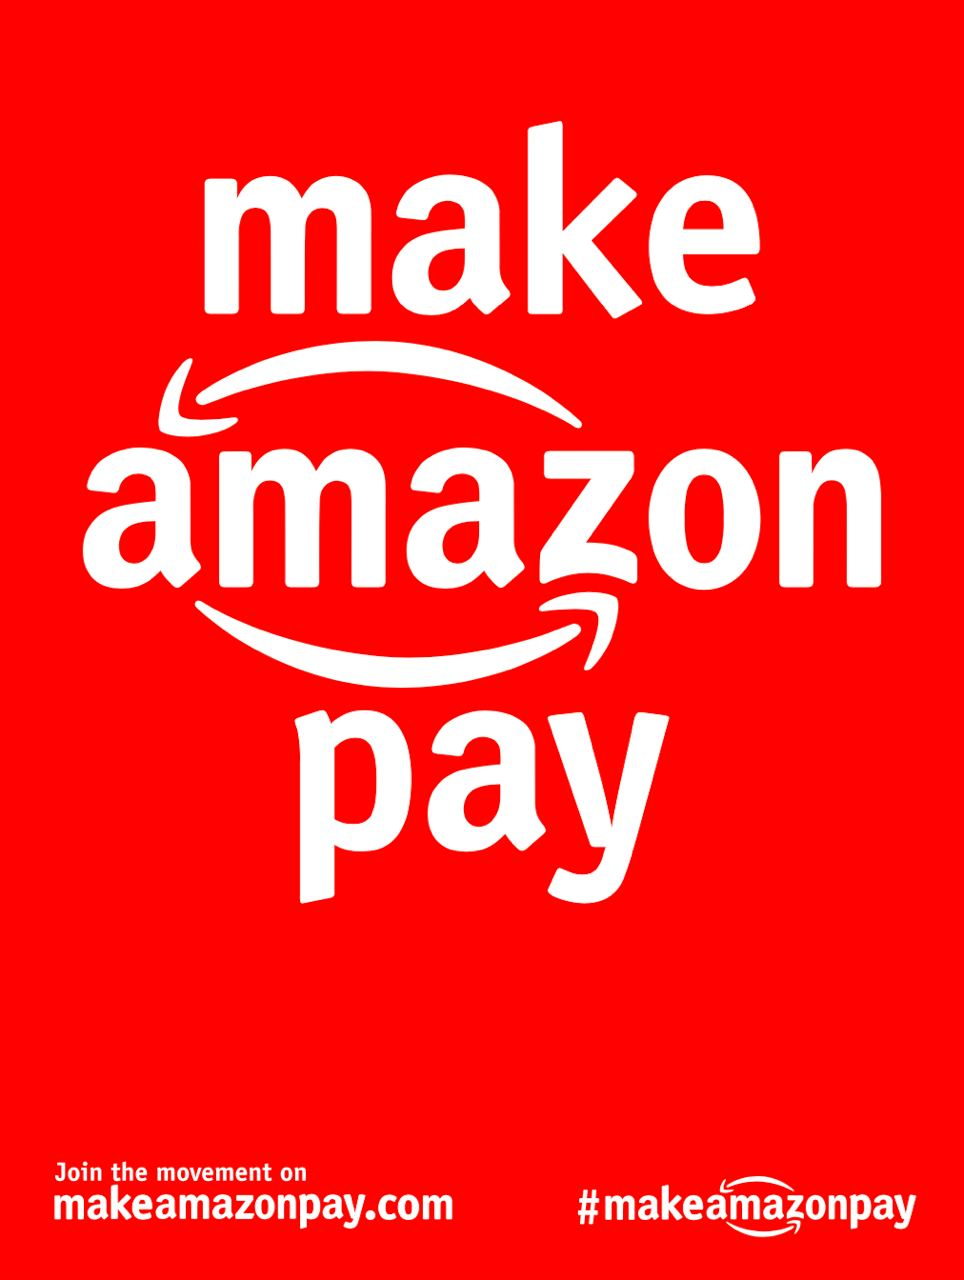 Make Amazon Pay | Download the #MakeAmazonPay Pack